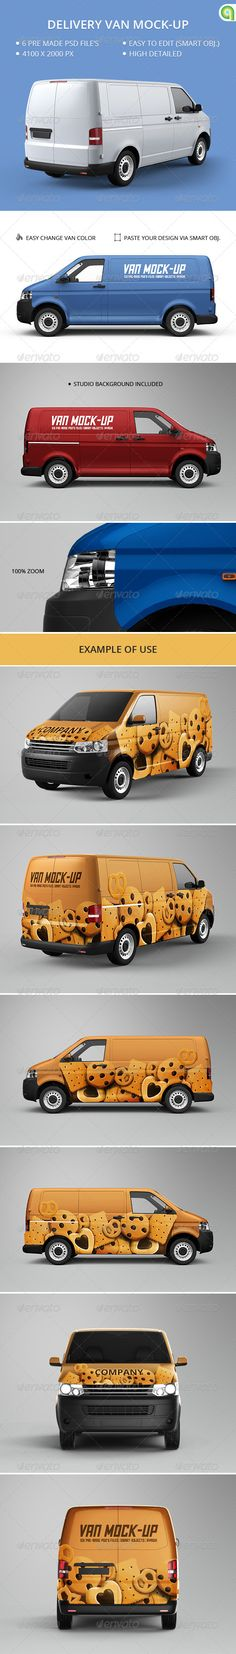 Van Mock-Up. #Mockup #van T4, Van Mock up, auto, automobile, brand, branding, car, company, delivery, design, lorry, mockup, photorealistic, print, service, t5, transport, truck, van, van mock-up, van mockup, vehicle, wrap, wraps